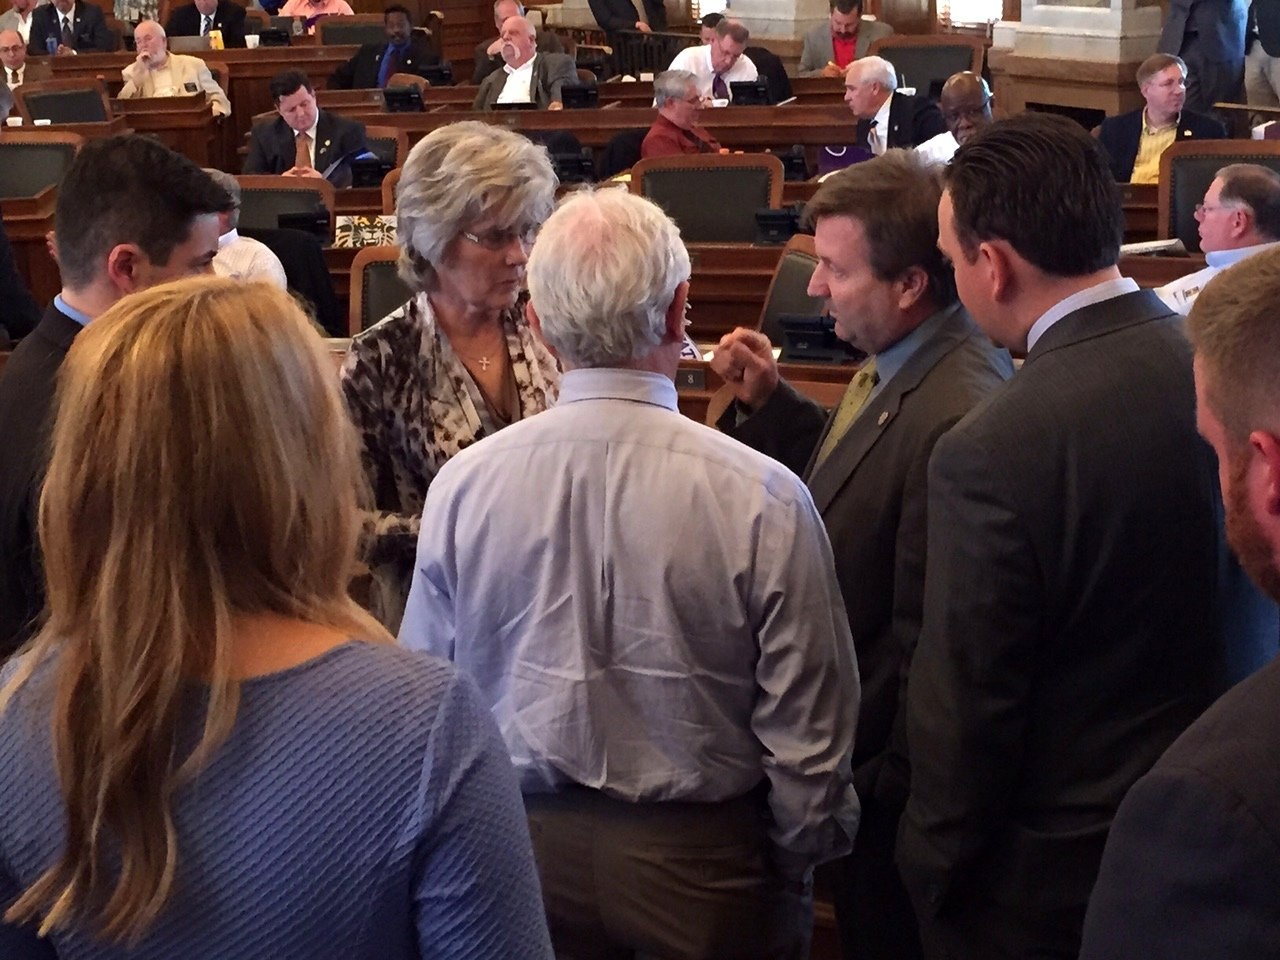 Lawmakers confer on the House floor Tuesday. (Photo by Stephen Koranda)